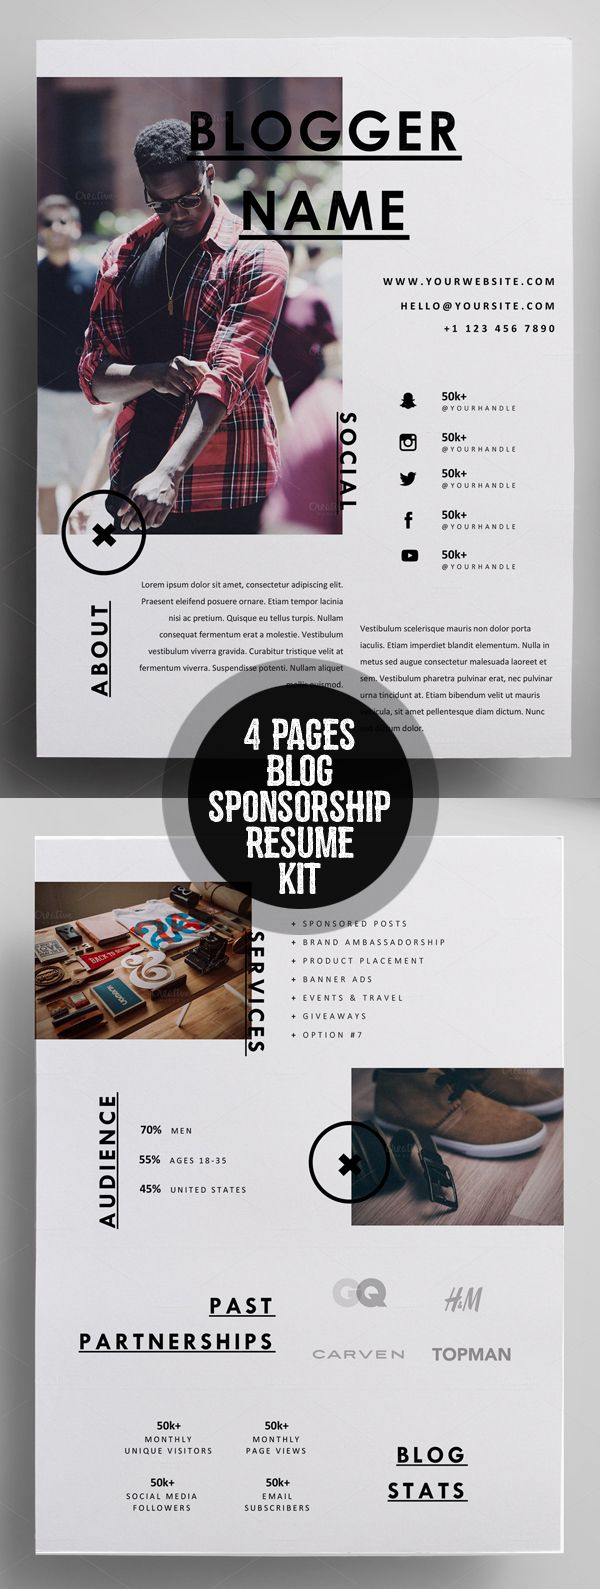 Creative 4 Pages Blog Sponsorship Kit Resume Template. Great ...